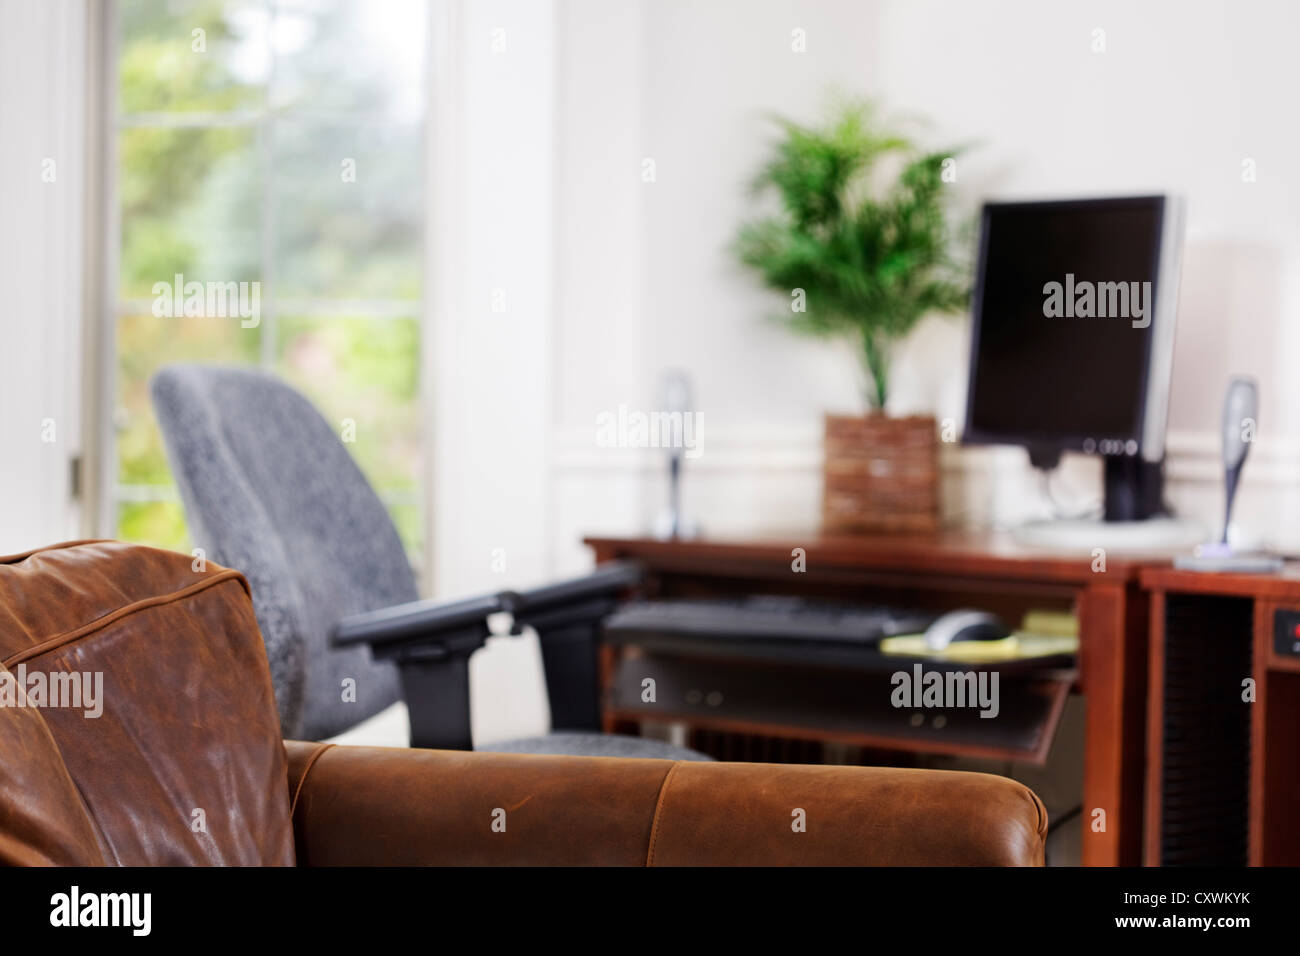 Comfy leather chair in a home office. Shallow depth of field. - Stock Image